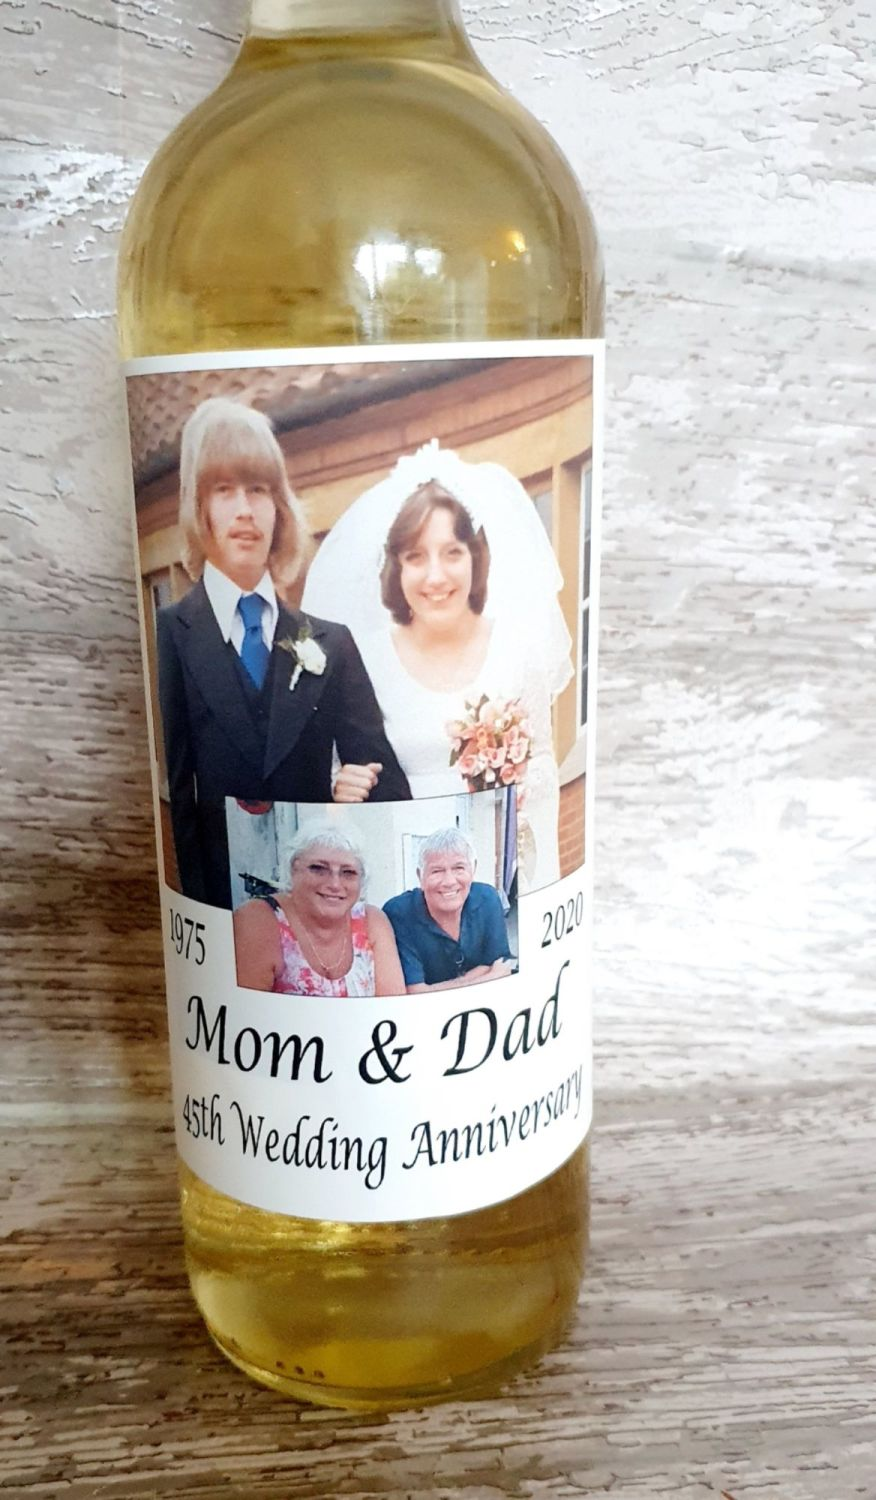 Personalised photo wine bottle label for wedding anniversary.